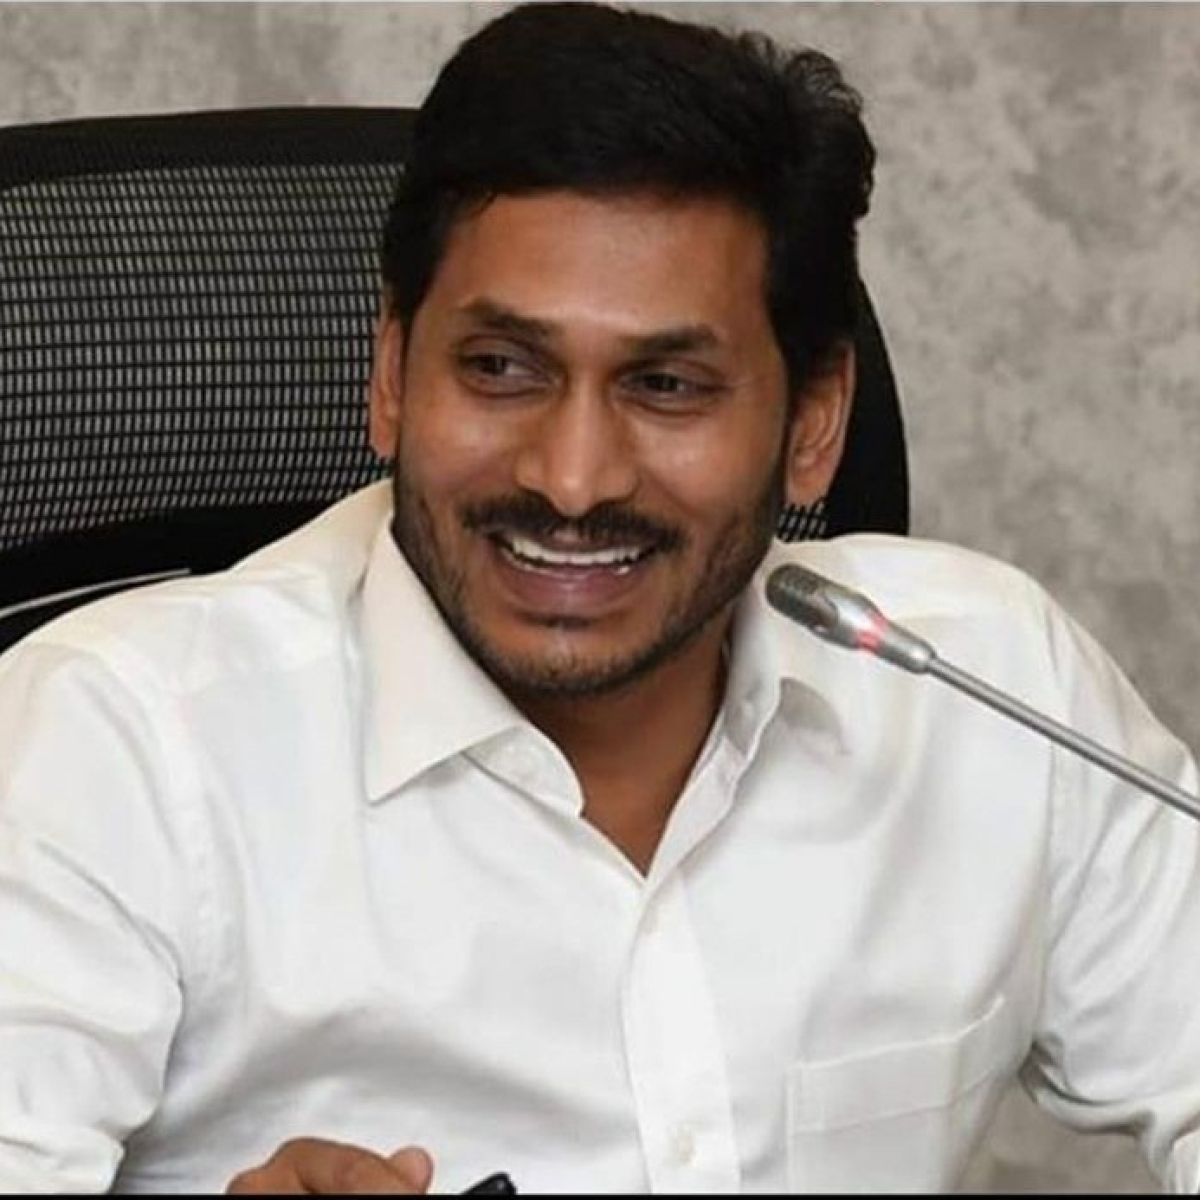 Andhra Pradesh may have separate legislative, executive and judicial capitals: CM Jagan Mohan Reddy